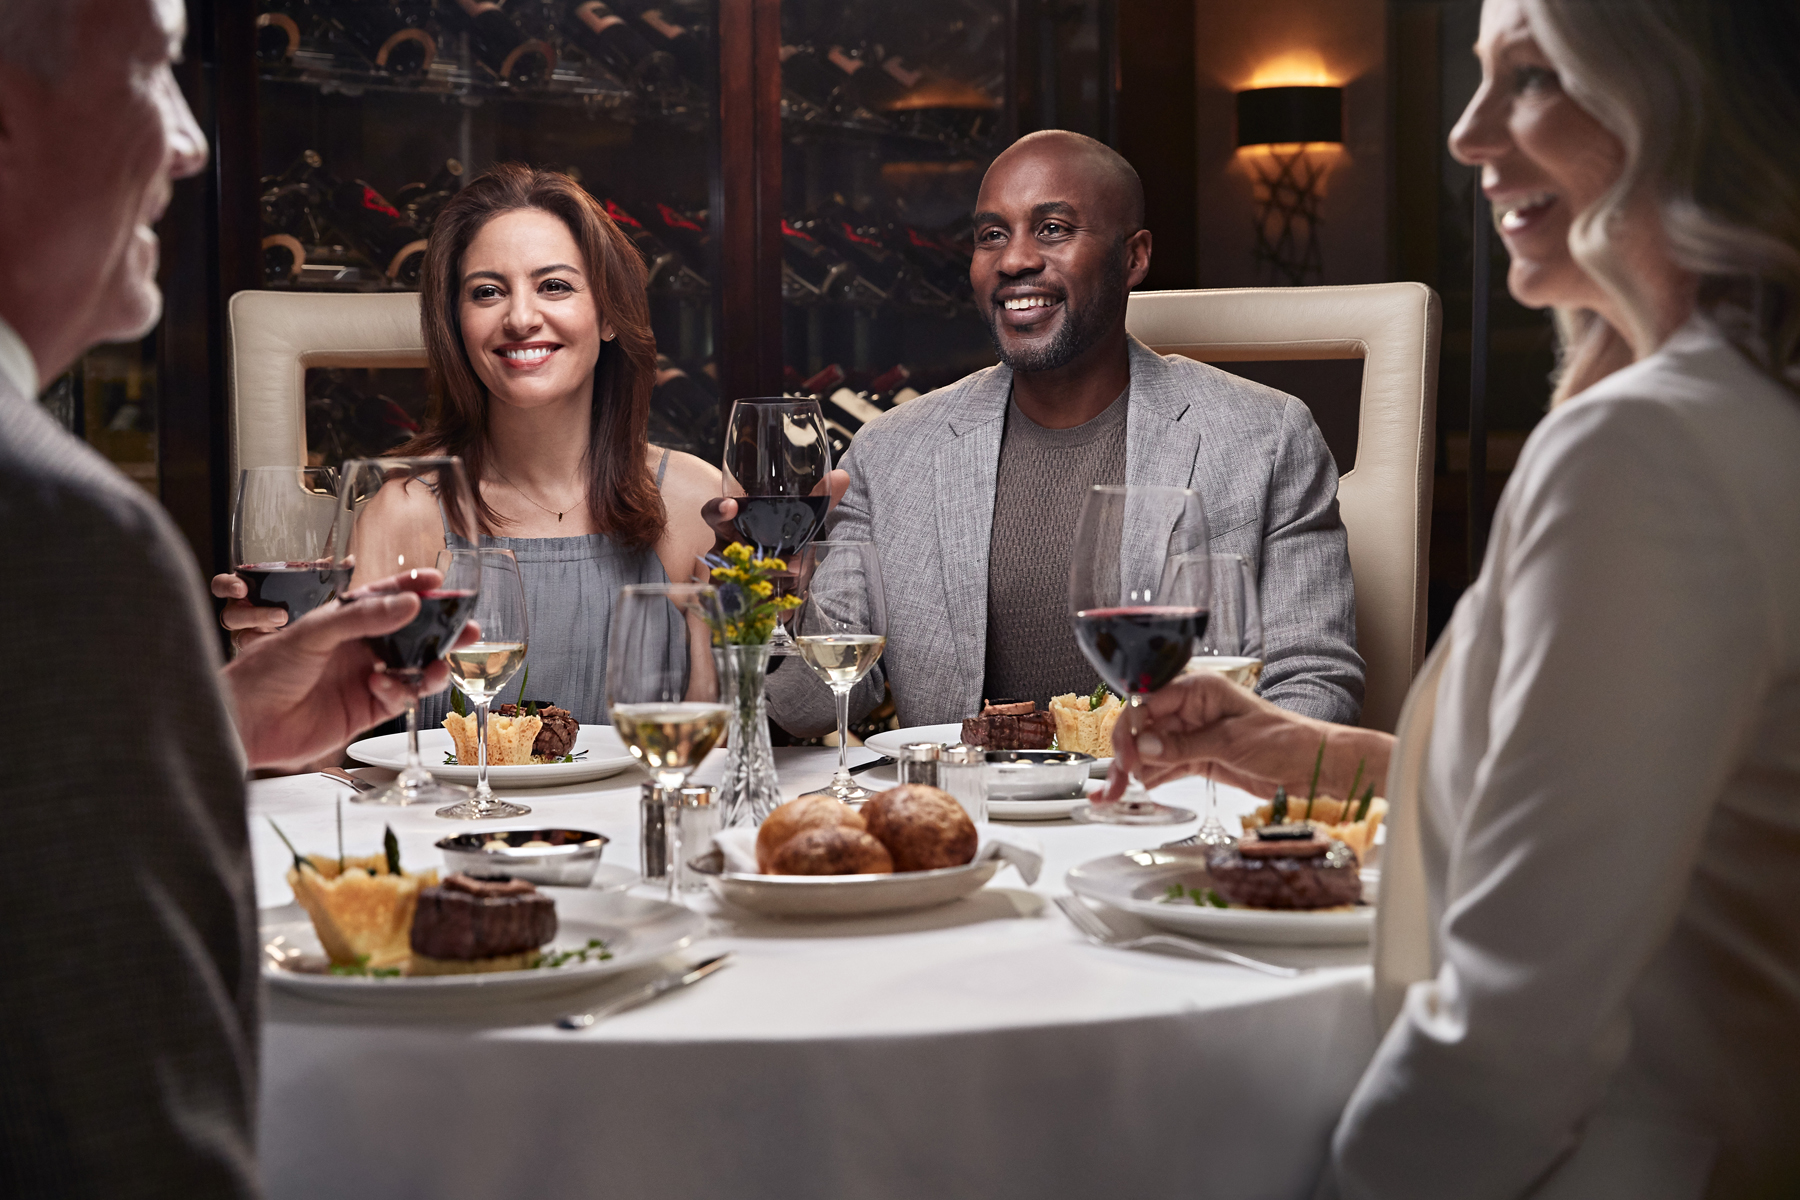 A group eating in the Concerto dining room on Grand Princess (source: Princess Cruises)